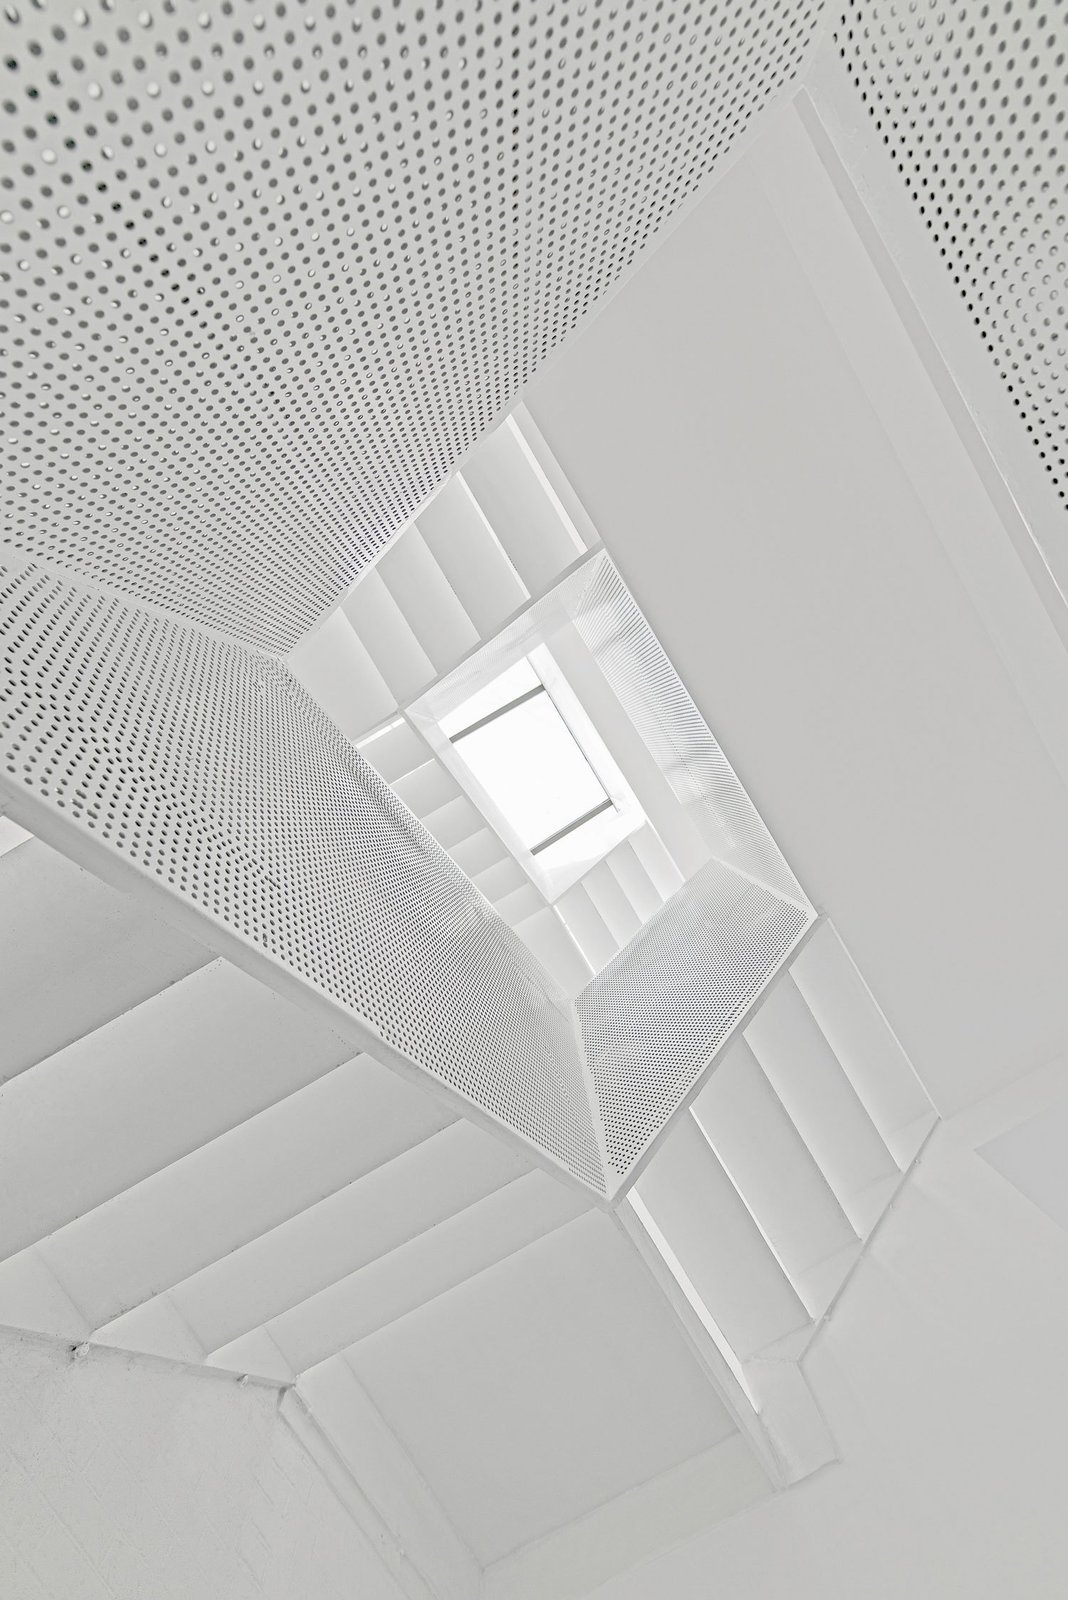 White House by Arch Studio  Photo 3 of 10 in How to Bring Light Into Dark Spaces